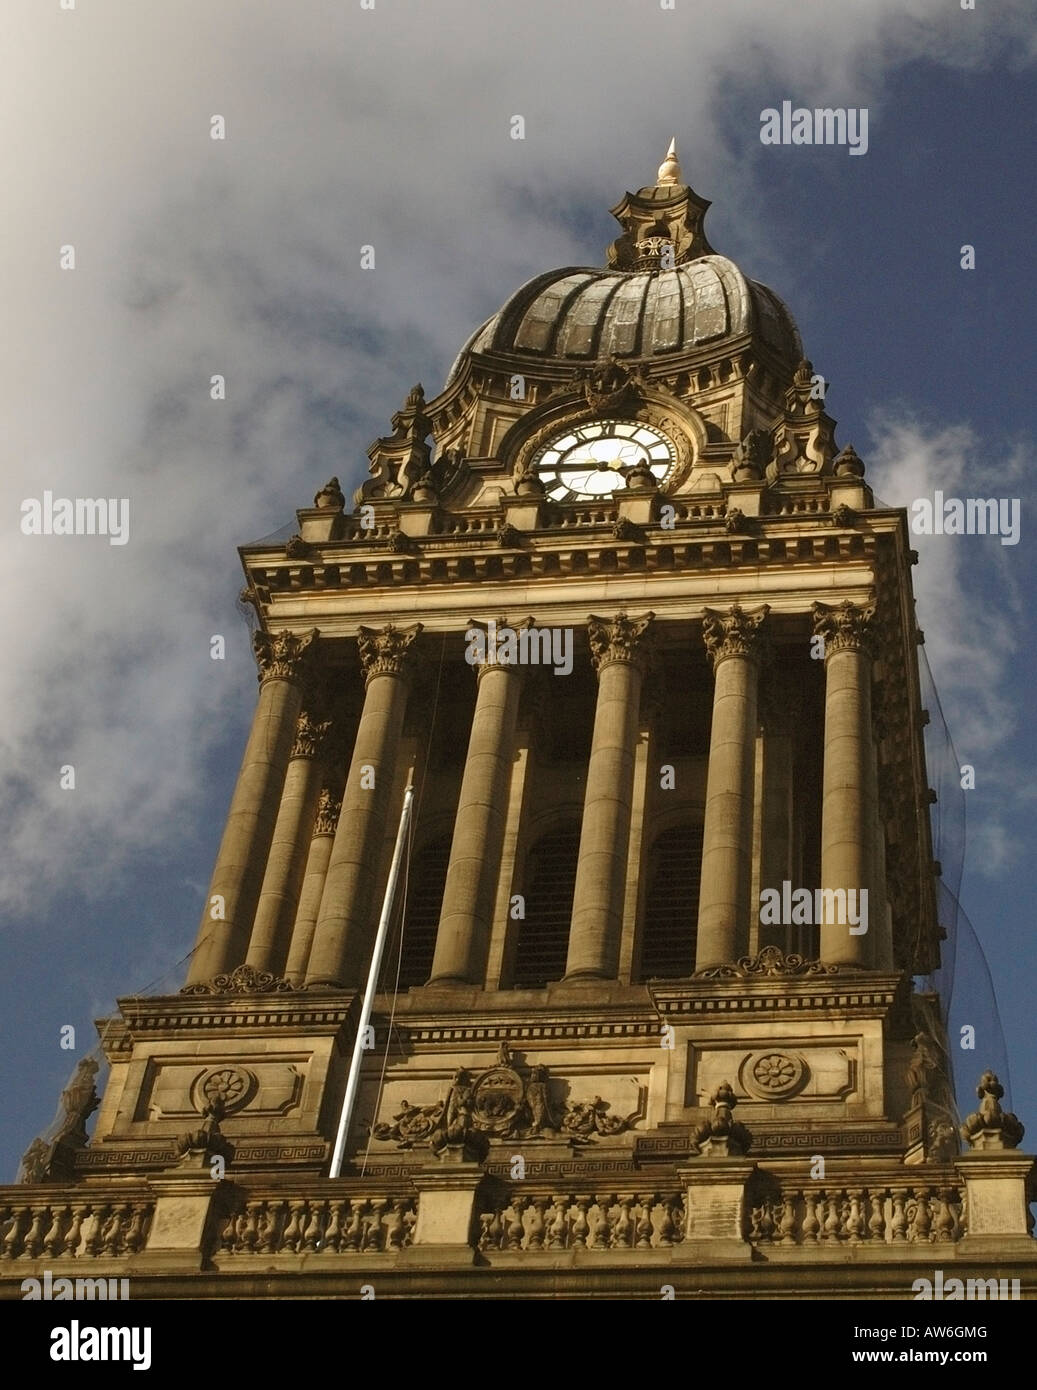 The Clock Tower, Leeds Town Hall - Stock Image